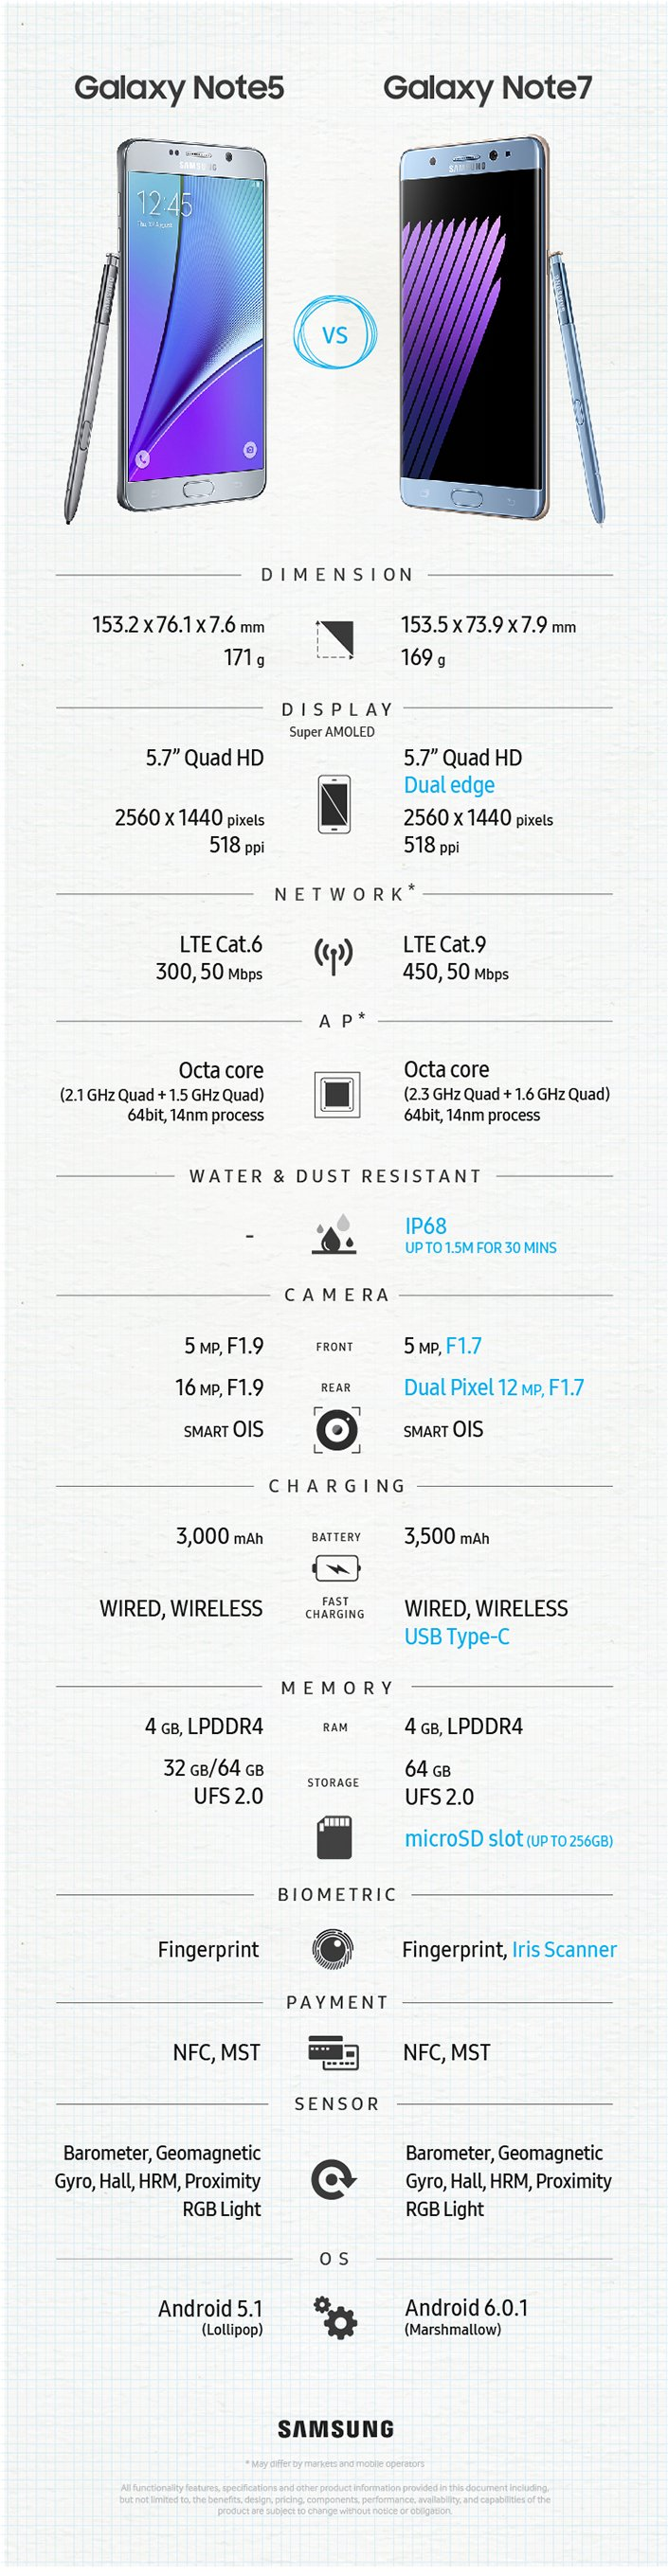 Official infographic of Galaxy Note 7 specifications vs Galaxy Note 5